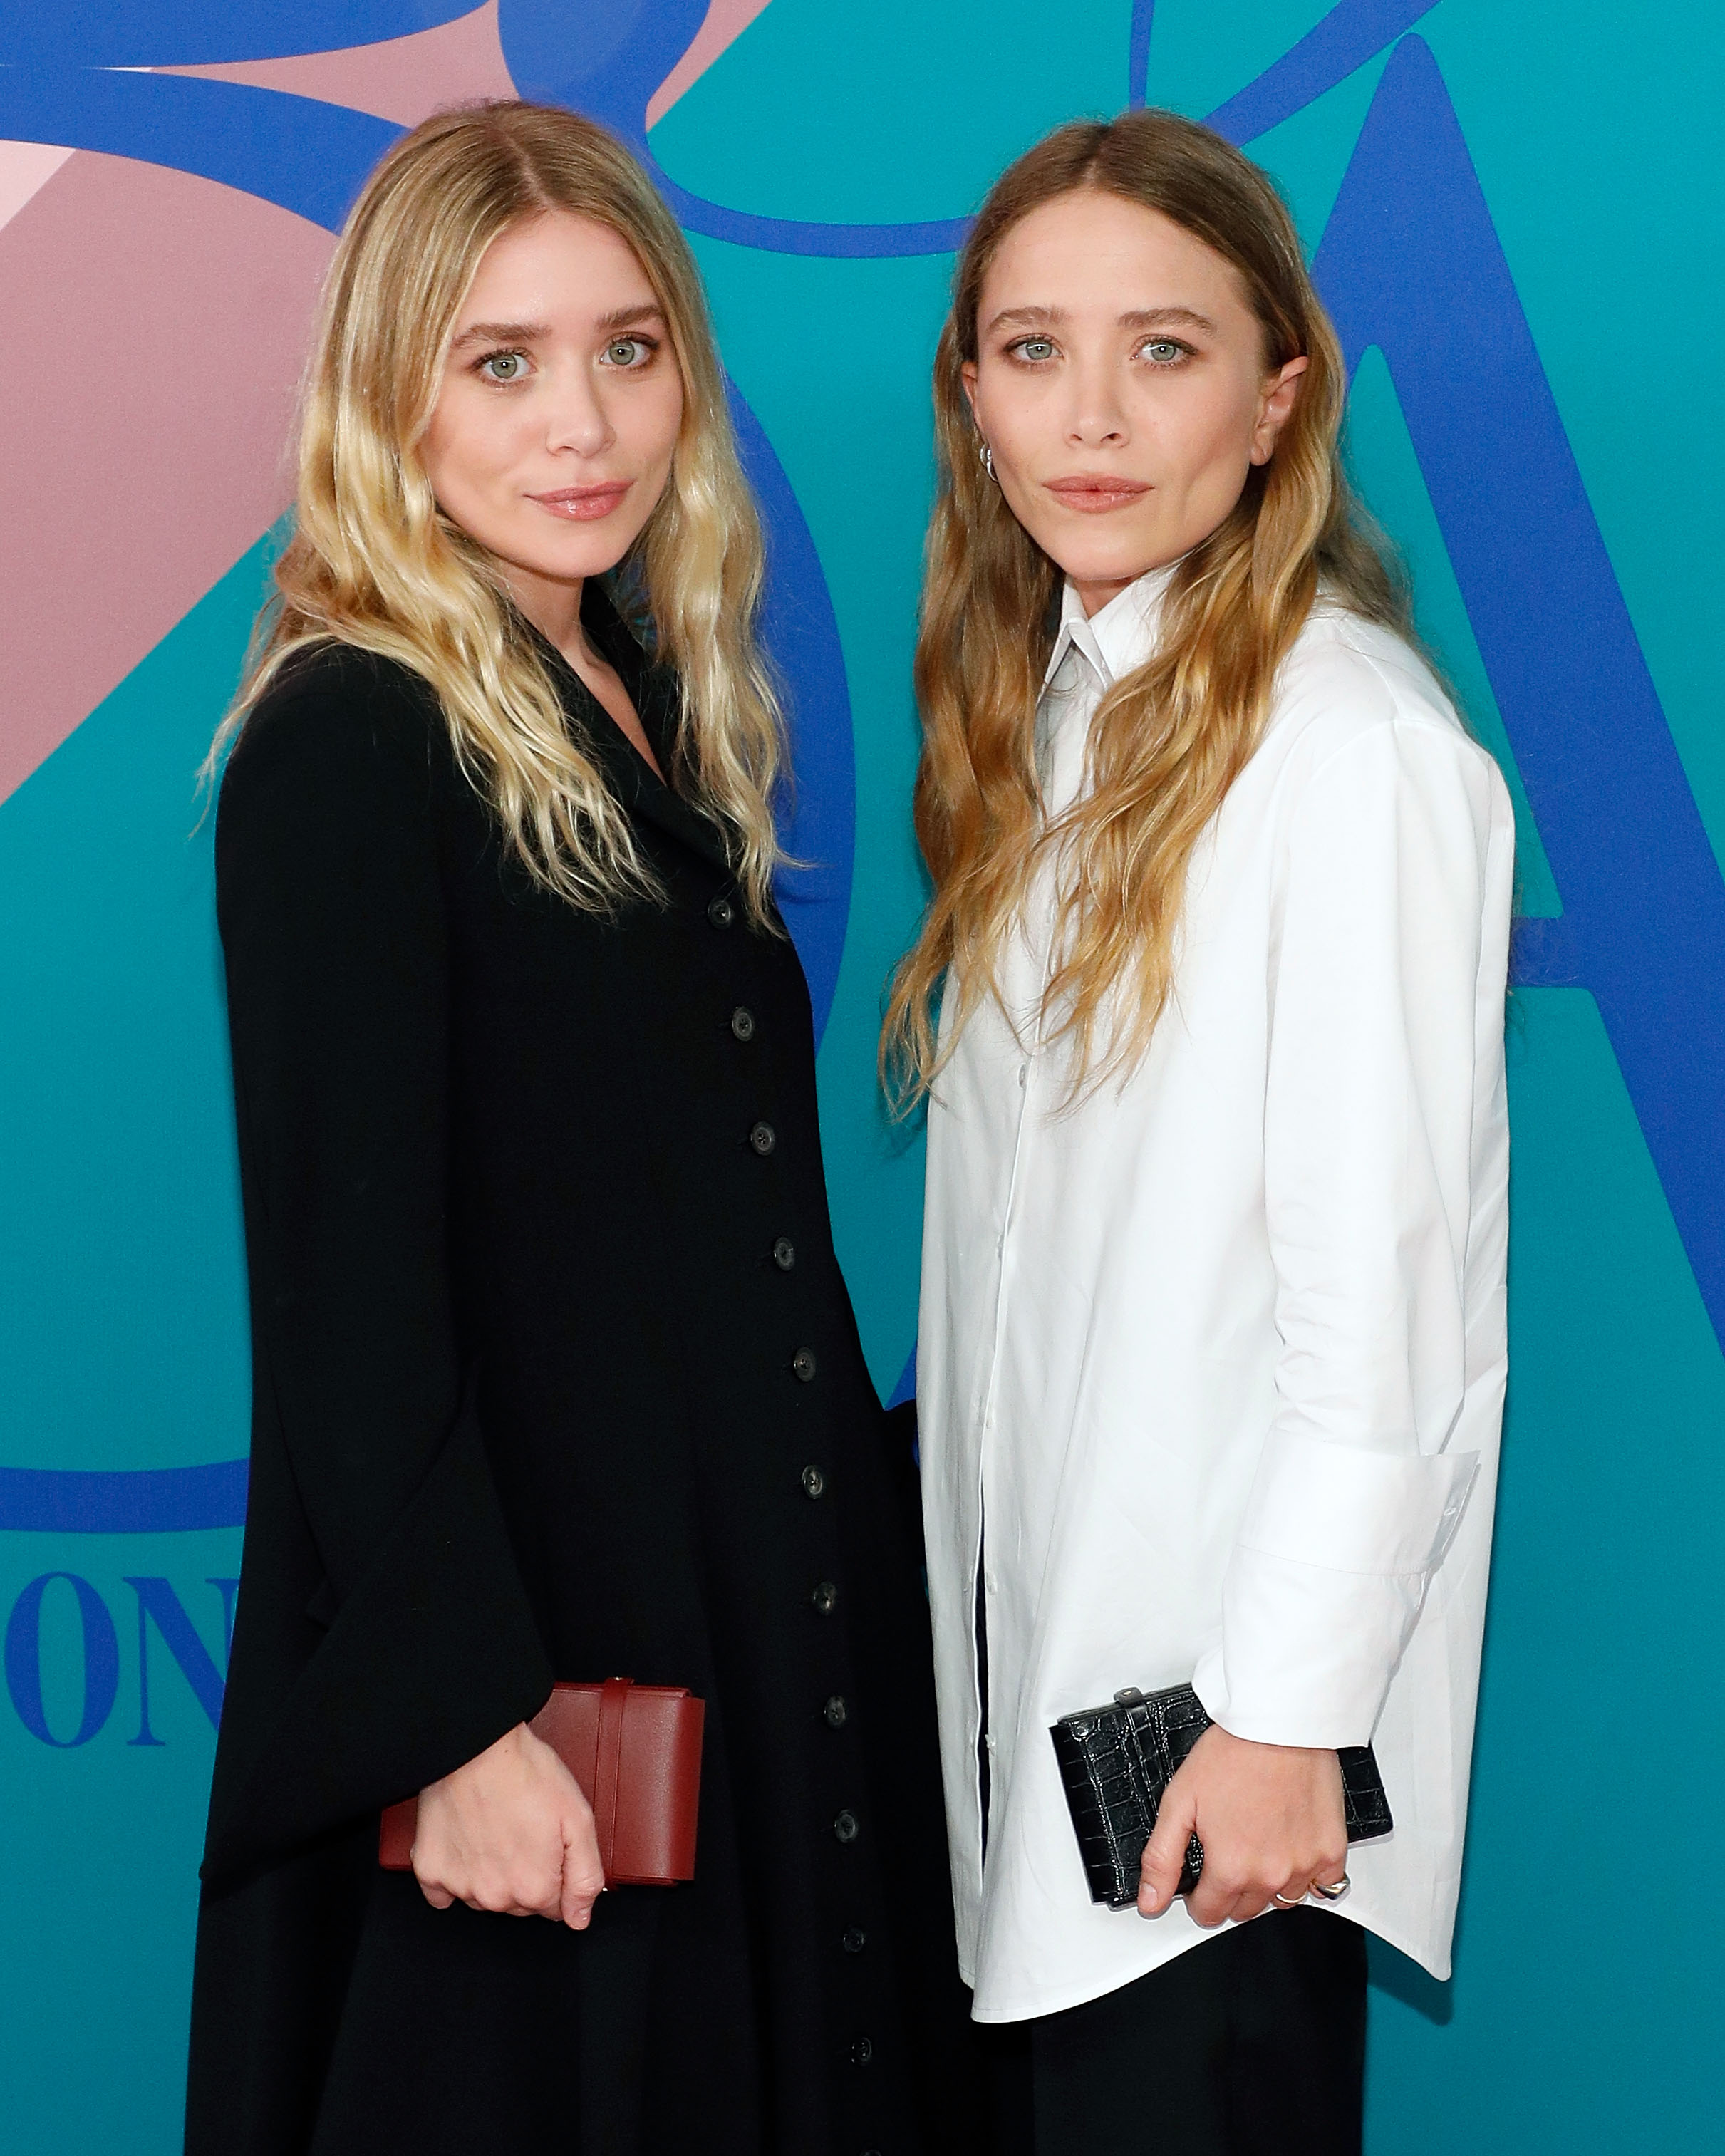 "<p>Designers Mary-Kate and Ashley Olsen's luscious locks never-fail to give us hair envy on the red-carpet, but the secret behind their perfectly tousled tresses is a product that every woman can afford to place in their purse-dry shampoo. </p> <p>""We don't have  time to get that perfectly tousled look. Their biggest secret is dry shampoo - it gives the hair such amazing texture, "" celebrity hairstylist Mark Townsend told <em><a href=""http://coveteur.com/2014/09/04/olsen-twin-hair/"" target=""_blank"" draggable=""false"">Coveteur. </a></em></p> <p>And the benefits of dry shampoo are not just exclusive to the A-list. </p> <p>Using a small handful to spray into the roots of your locks can completely revamp your look, extend your hairstyle  and give your tresses a polished finish without a hair dryer or basin in sight. </p> <p>""I love dry shampoo. There are so many benefits to using it. It means less greasy hair and it gives volume,"" senior hairstylist Nathan Yip told <a href=""http://style.nine.com.au/2016/10/13/10/44/dry-shampoo-scalp-hair-skin-bald-hair-loss-thin-hair-fine-hair-dirty-hair"" target=""_blank"" draggable=""false"">9Style.</a></p> <p>Revamp your beauty bag with  ten of the best dry shampoos that will ensure you never have a bad hair day again.</p>"